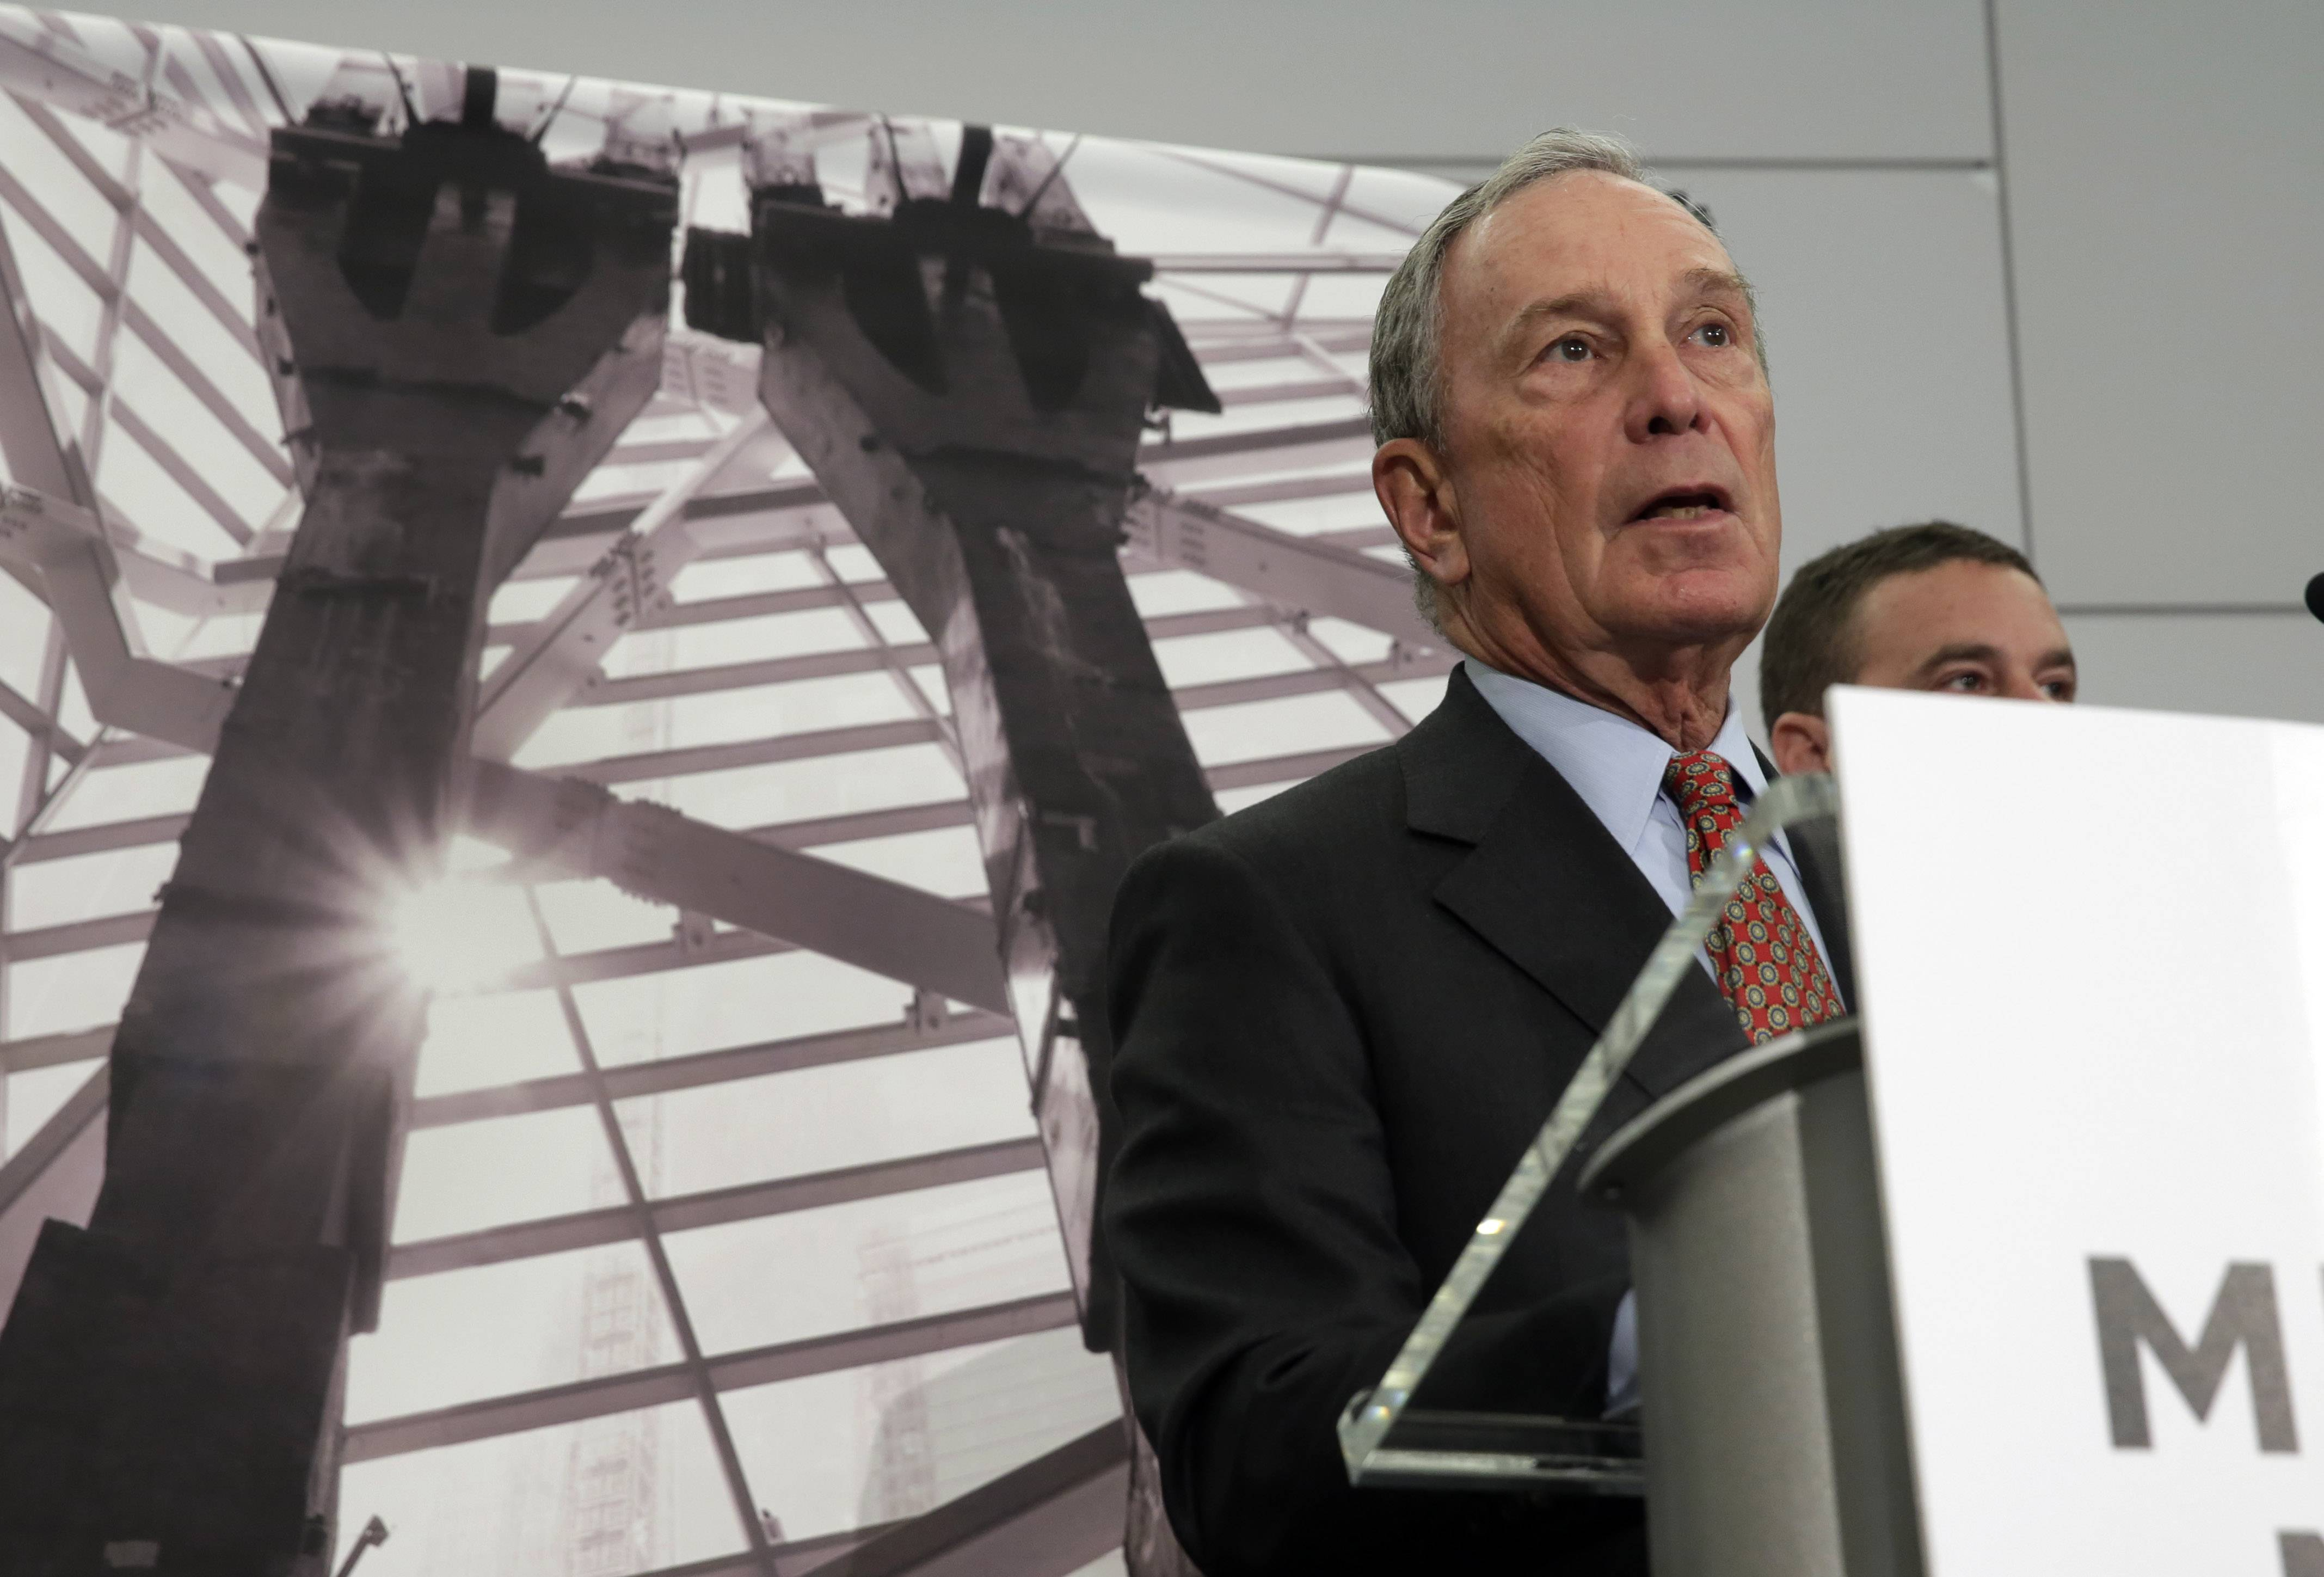 Former New York Mayor Michael Bloomberg, chairman of the Sept. 11 museum, addresses a news conference in the venue, in New York, Wednesday, May 14, 2014. Leaders of the soon-to-open Sept. 11 museum are portraying it as a monument to unity and resilience.